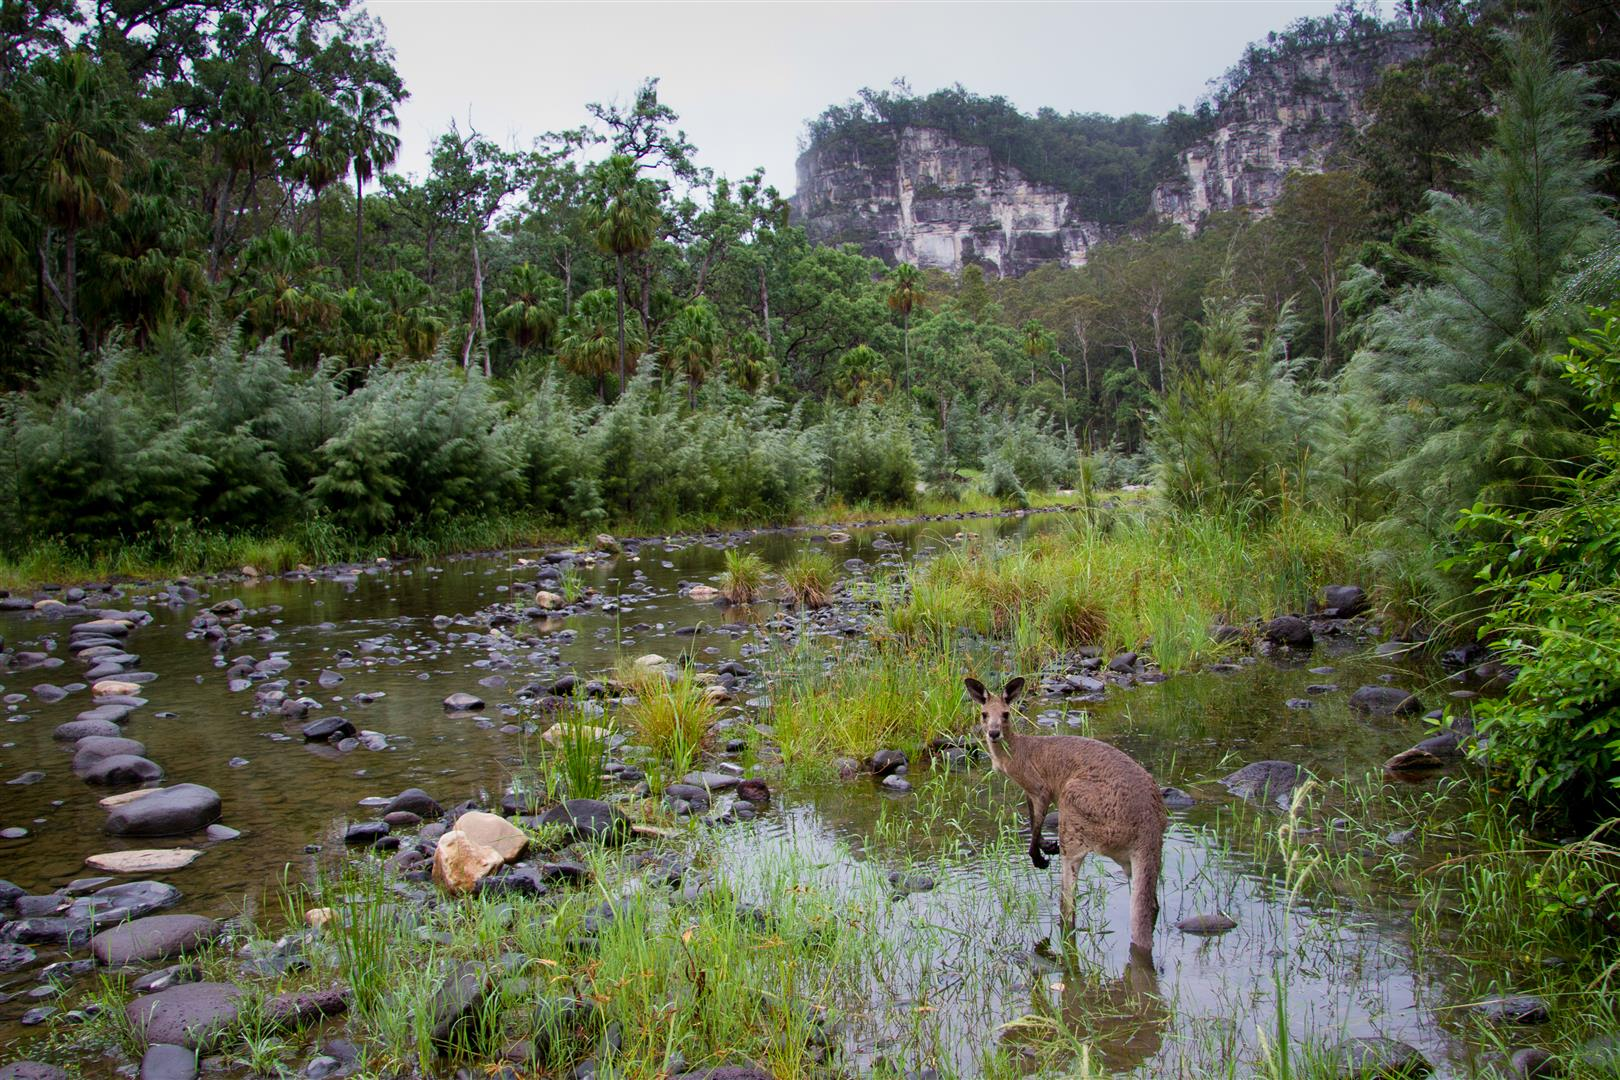 An Eastern Grey Kangaroo enjoys the creek-side cool